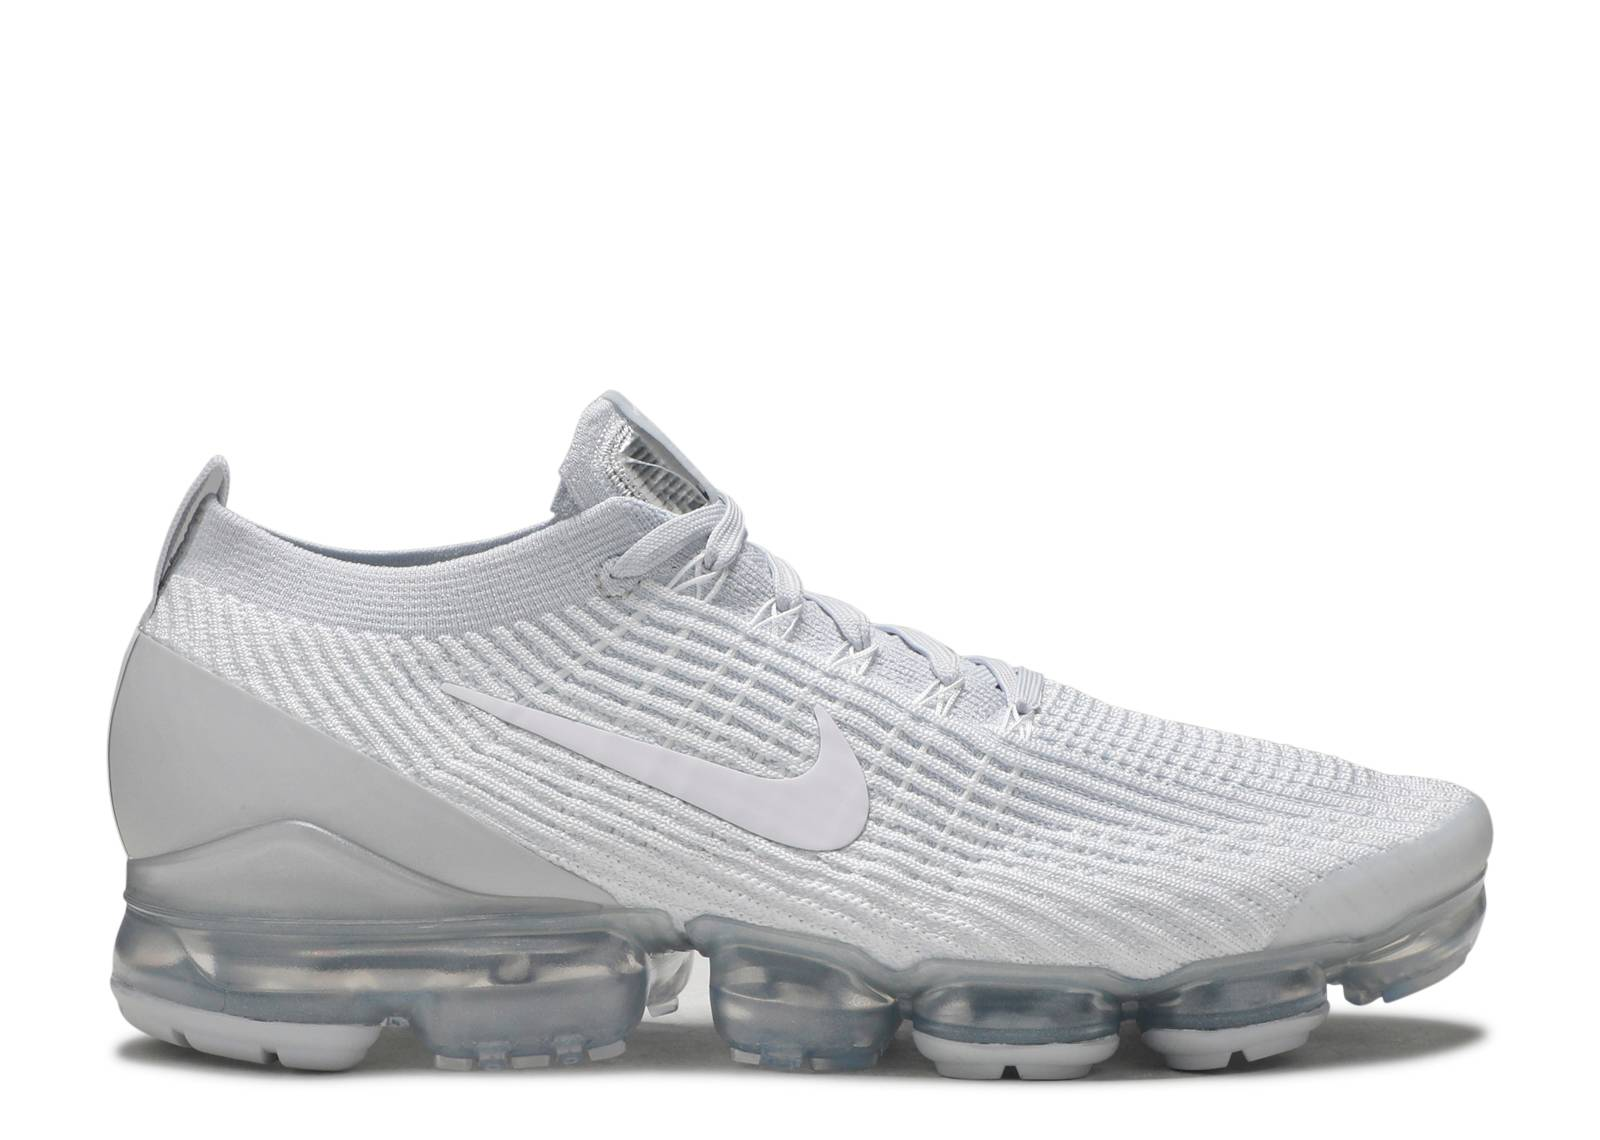 detailed look 574ff f72e2 Vapormax - Nike Running - Nike | Flight Club